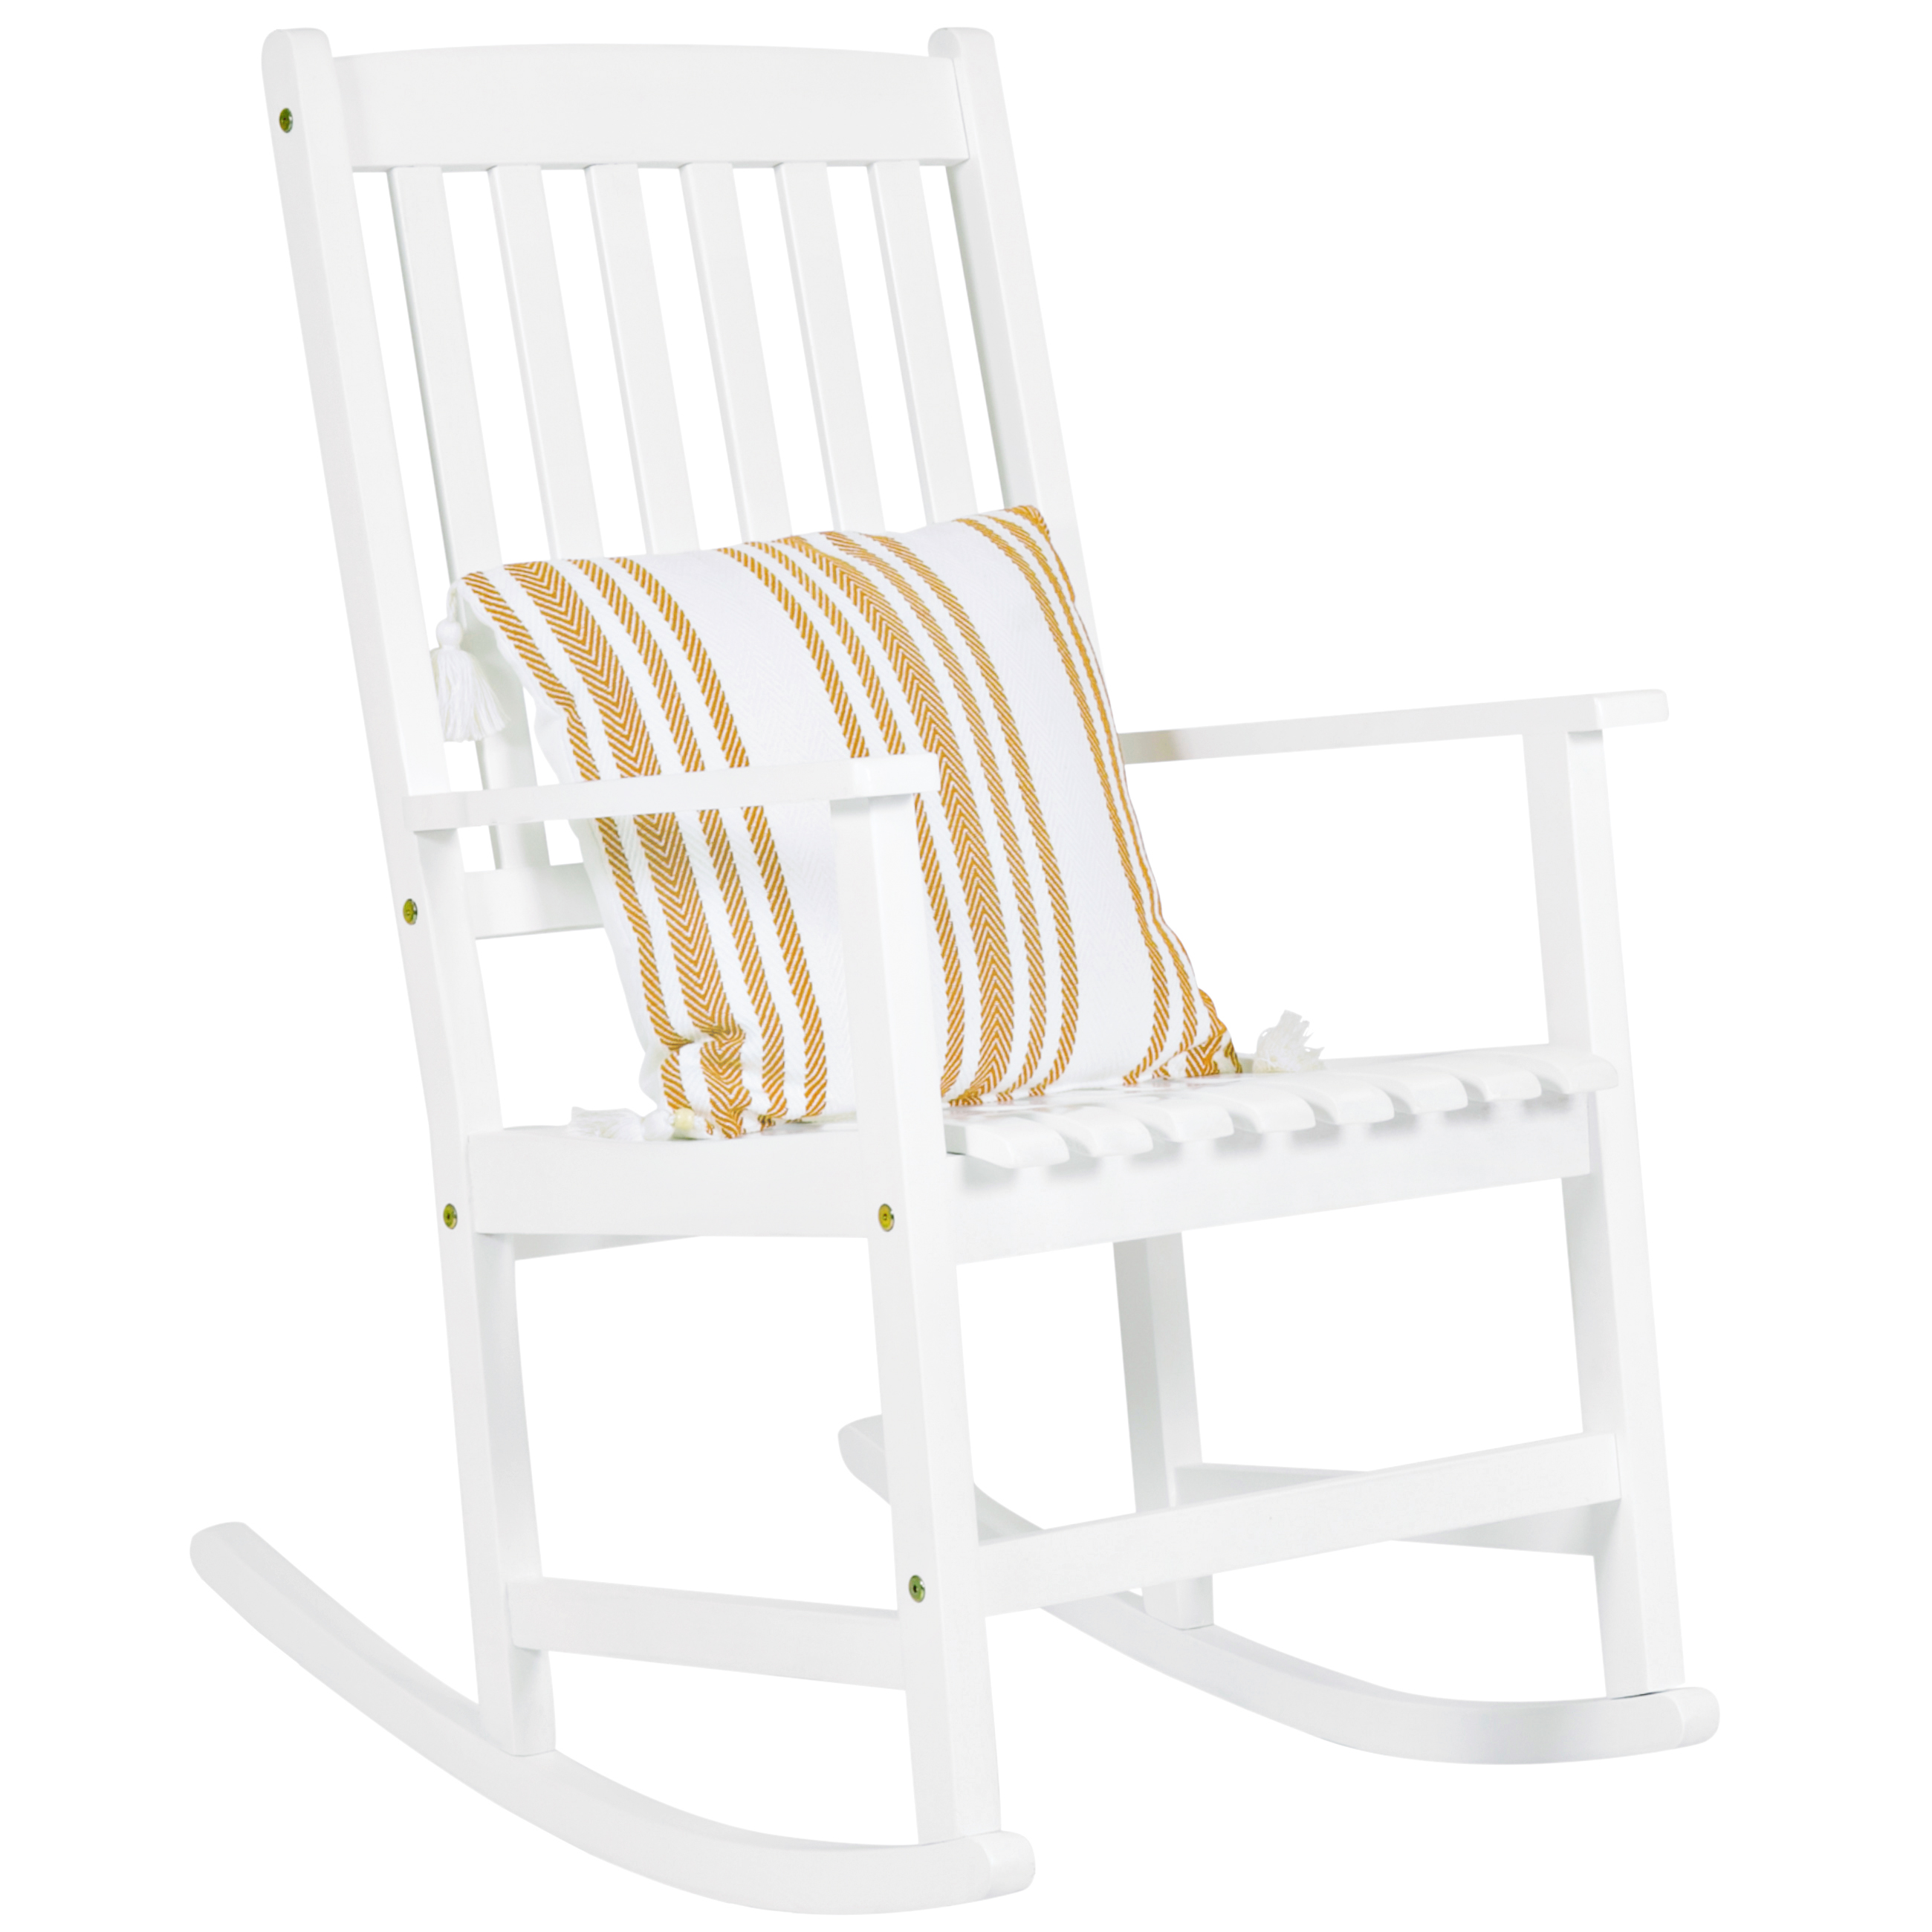 Best Choice Products Indoor Outdoor Traditional Slat Wood Rocking Chair  Furniture For Patio, Porch,